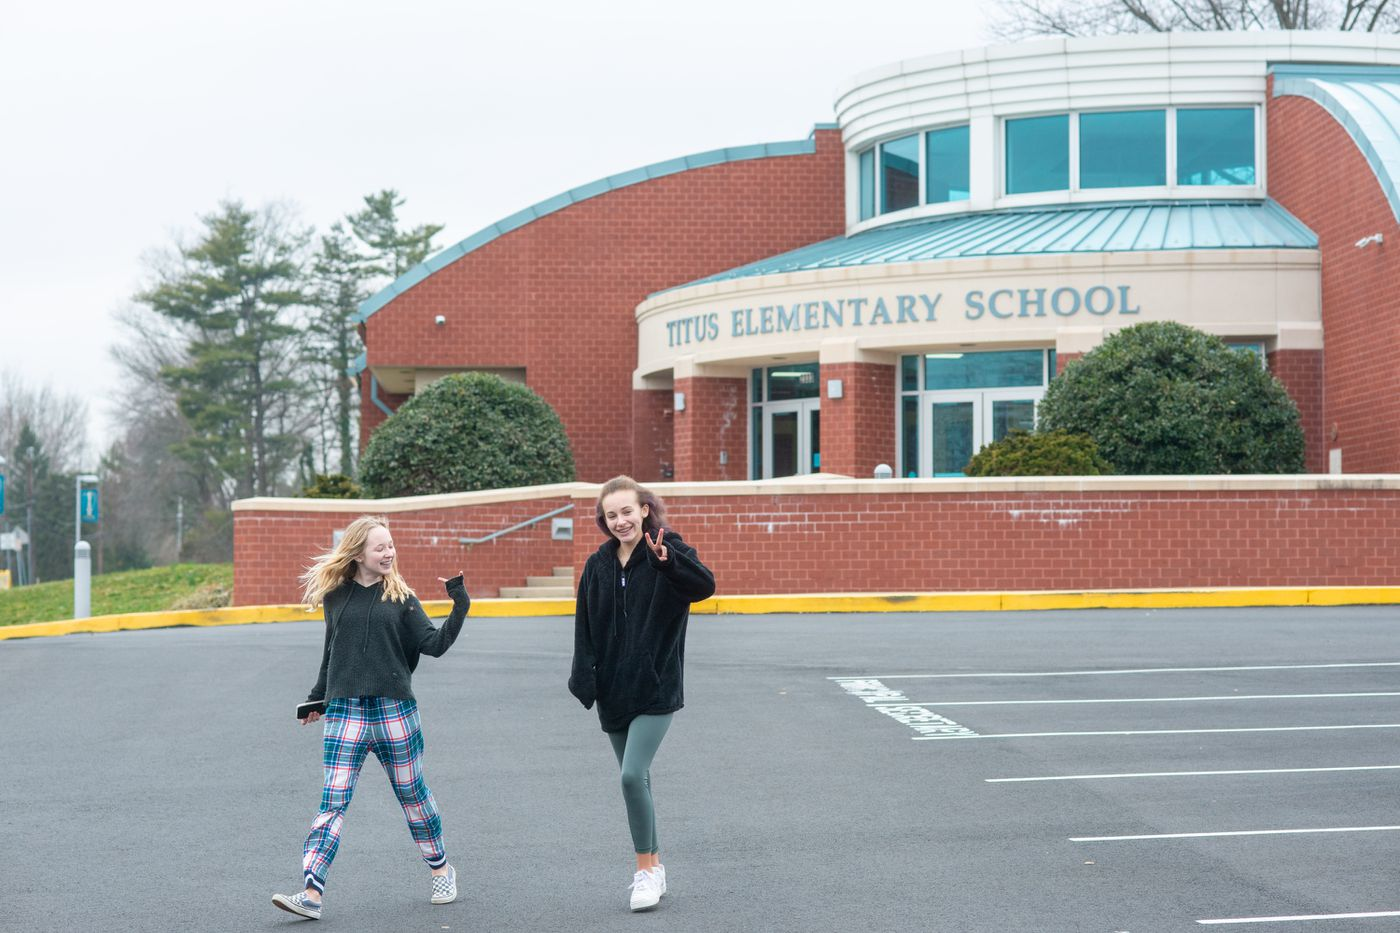 From left, Kaylyn Toerr and Gabby Long walk through the parking lot after their school was closed for the day because of a possible coronavirus threat Friday, March 06, 2020 at Titus Elementary School in Warrington. Five Central Bucks School District schools were closed for deep cleaning as a precaution and will reopen Monday March 9. WILLIAM THOMAS CAIN / For The Inquirer